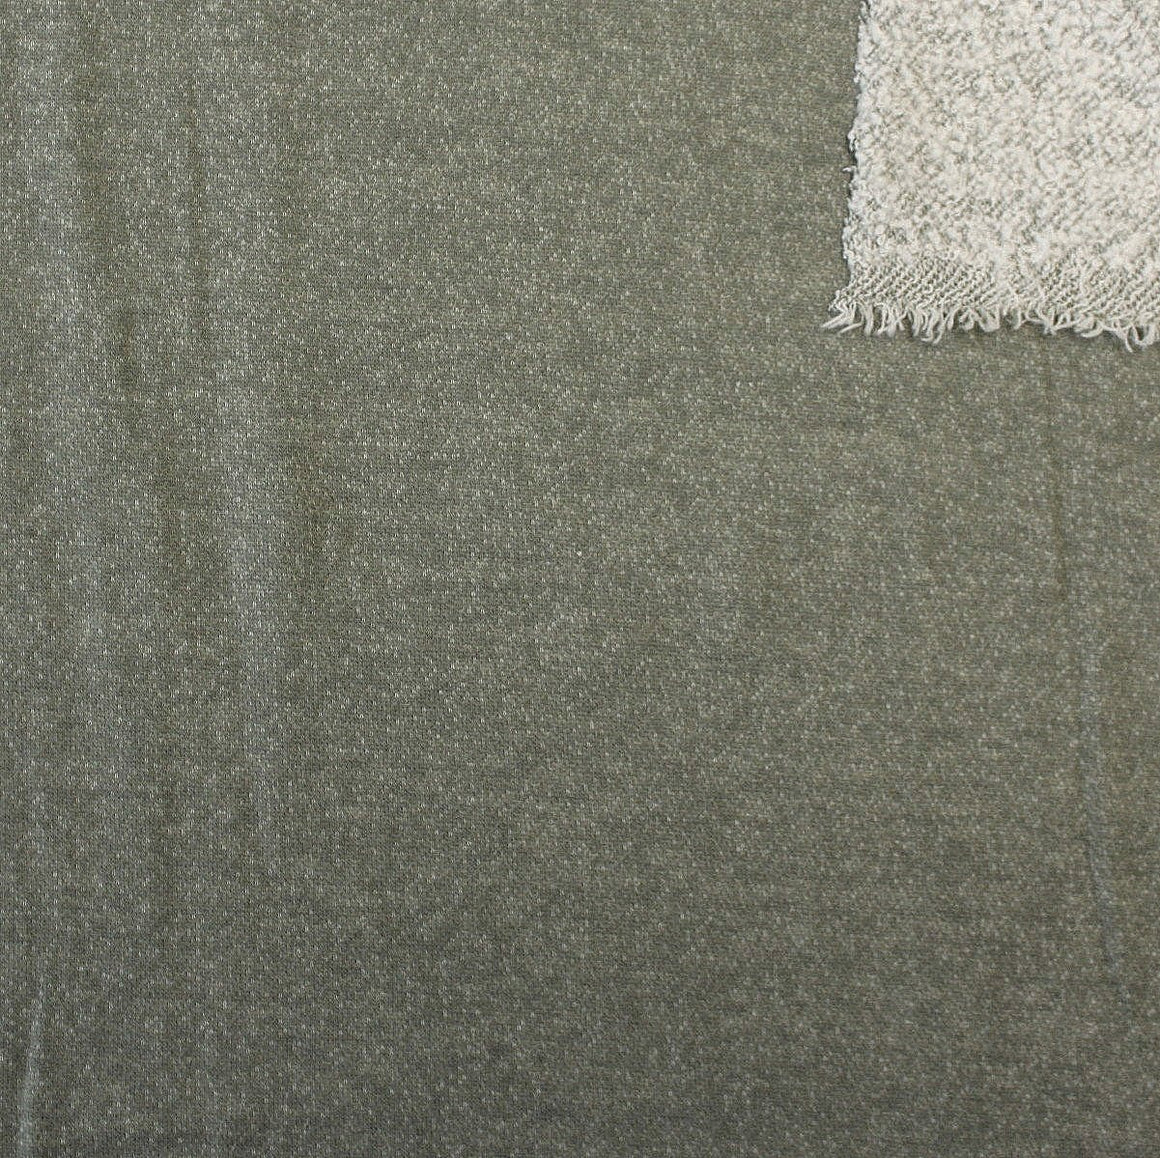 Dusty Olive Brushed Heathered French Terry Knit Fabric Raspberry Creek Fabrics